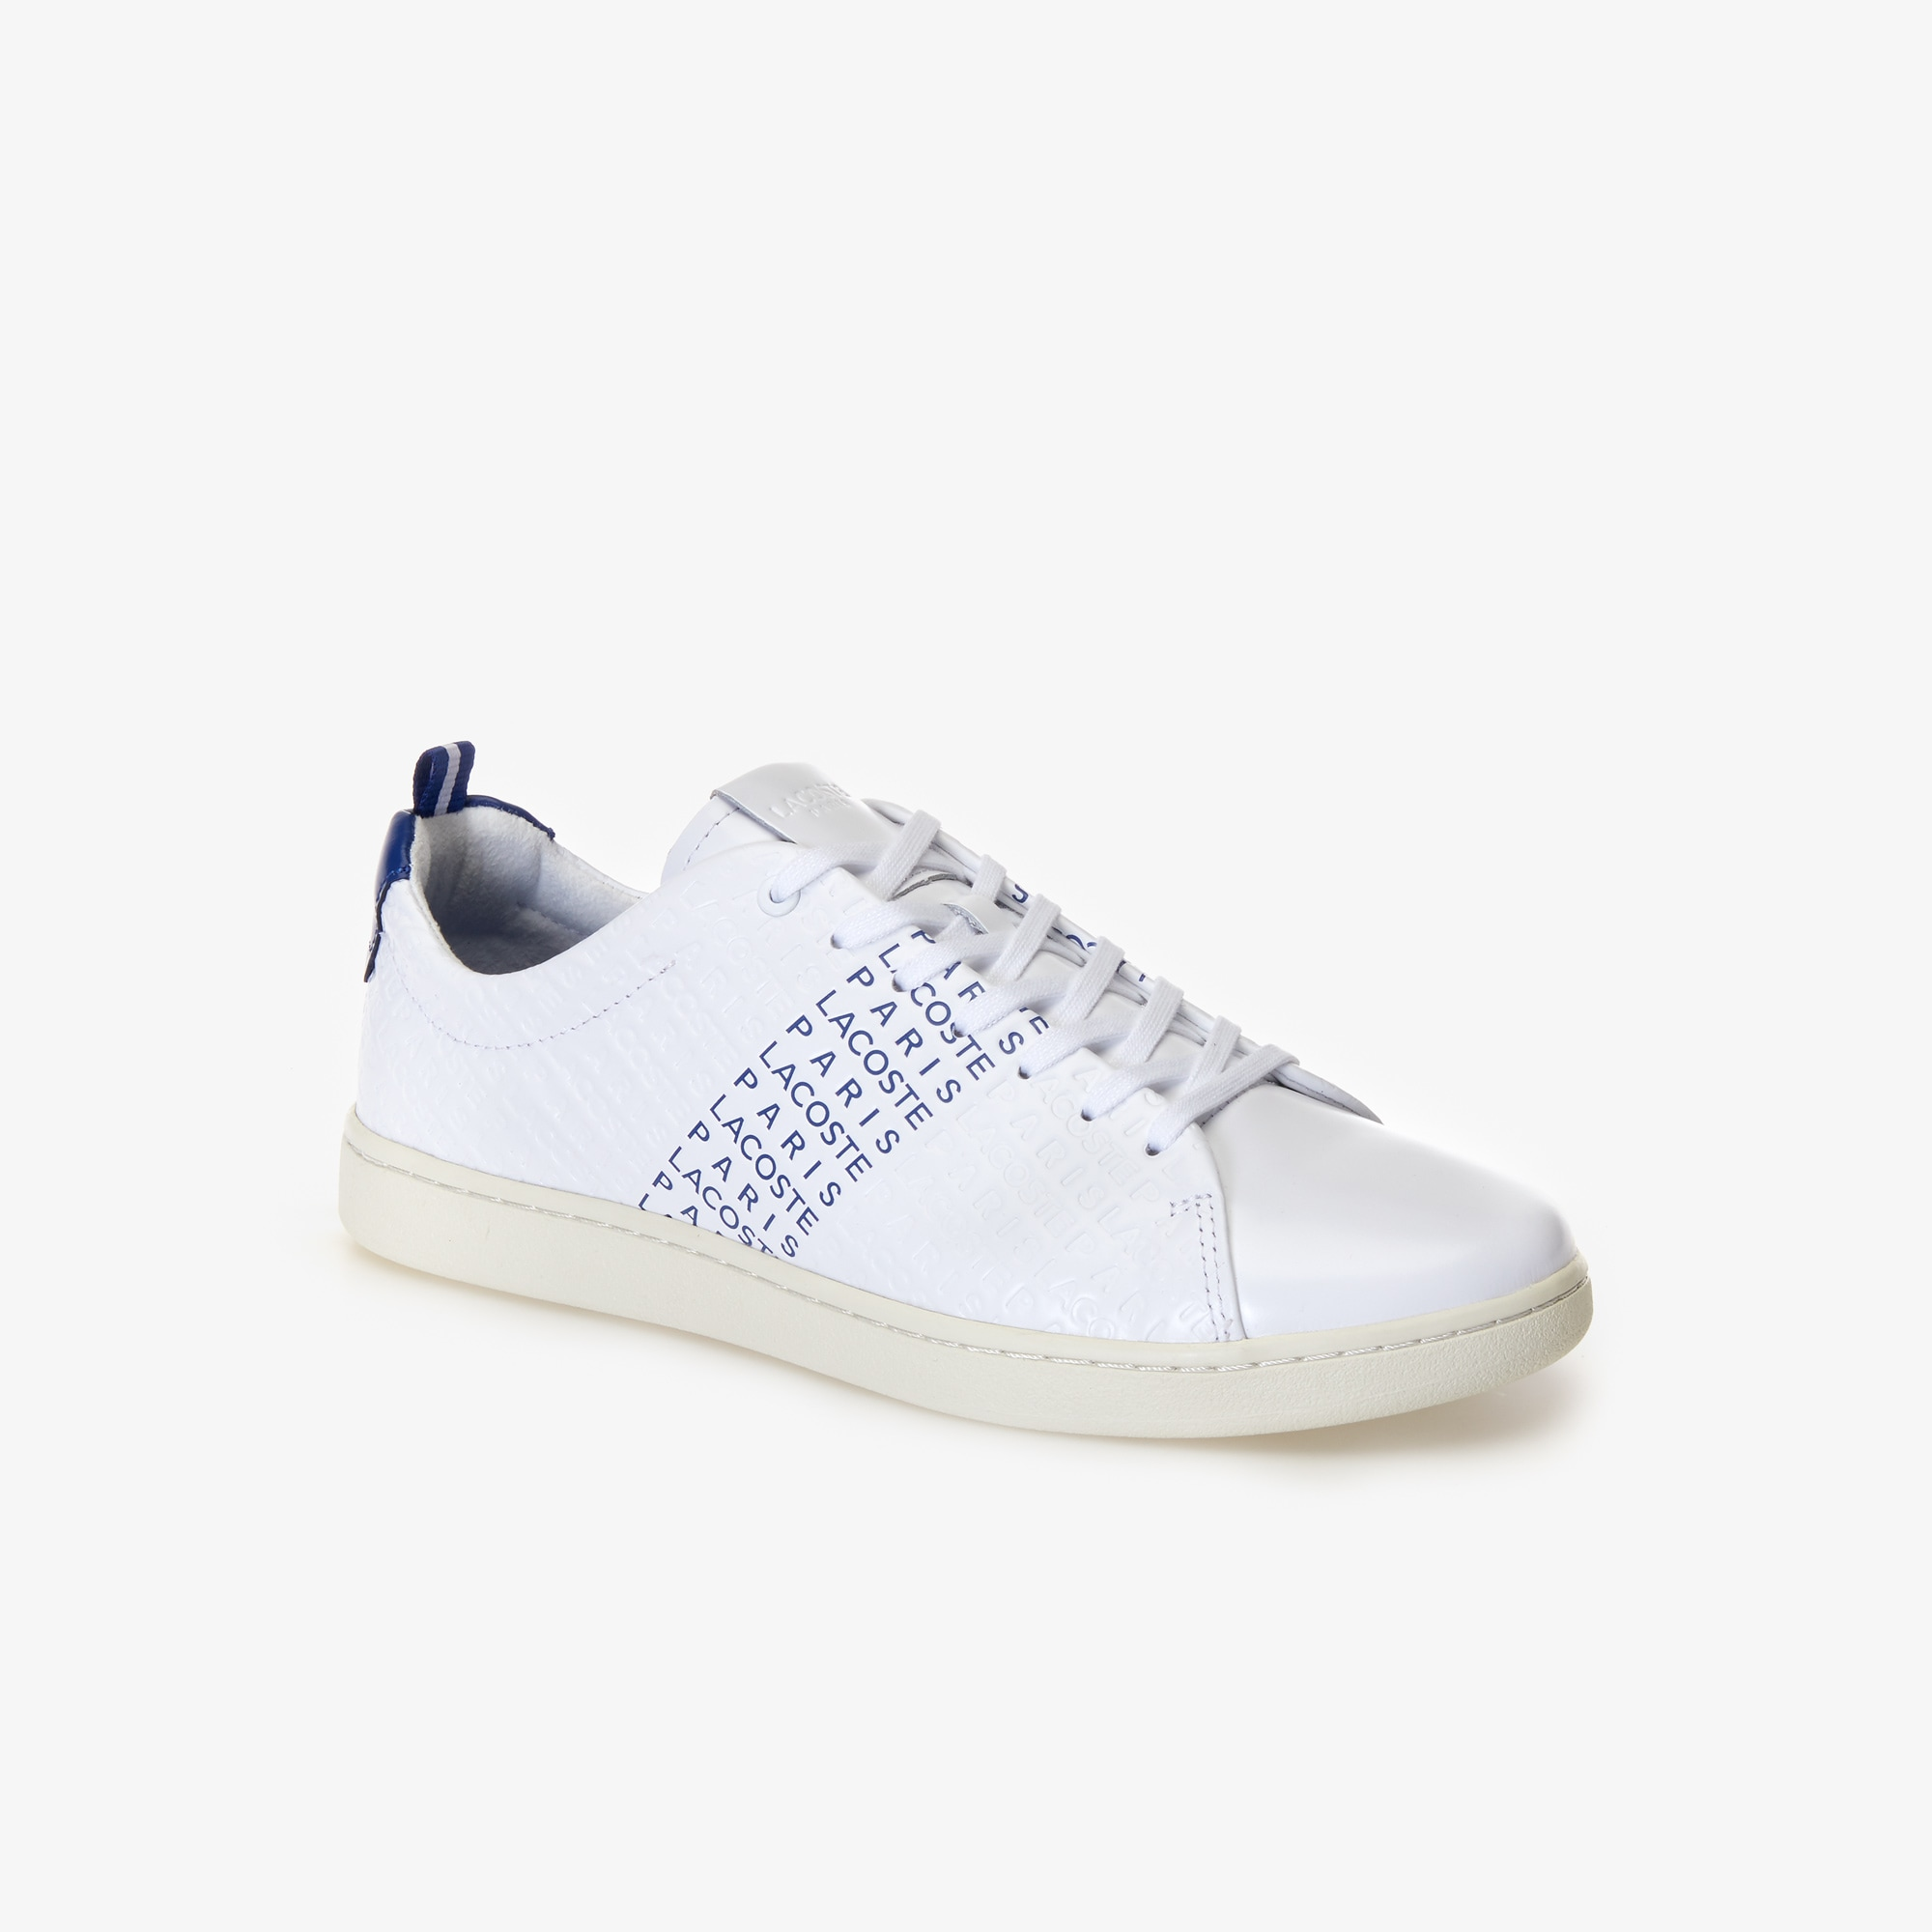 265652658251a Men's Bayliss Sneaker. $90.00. 40% off